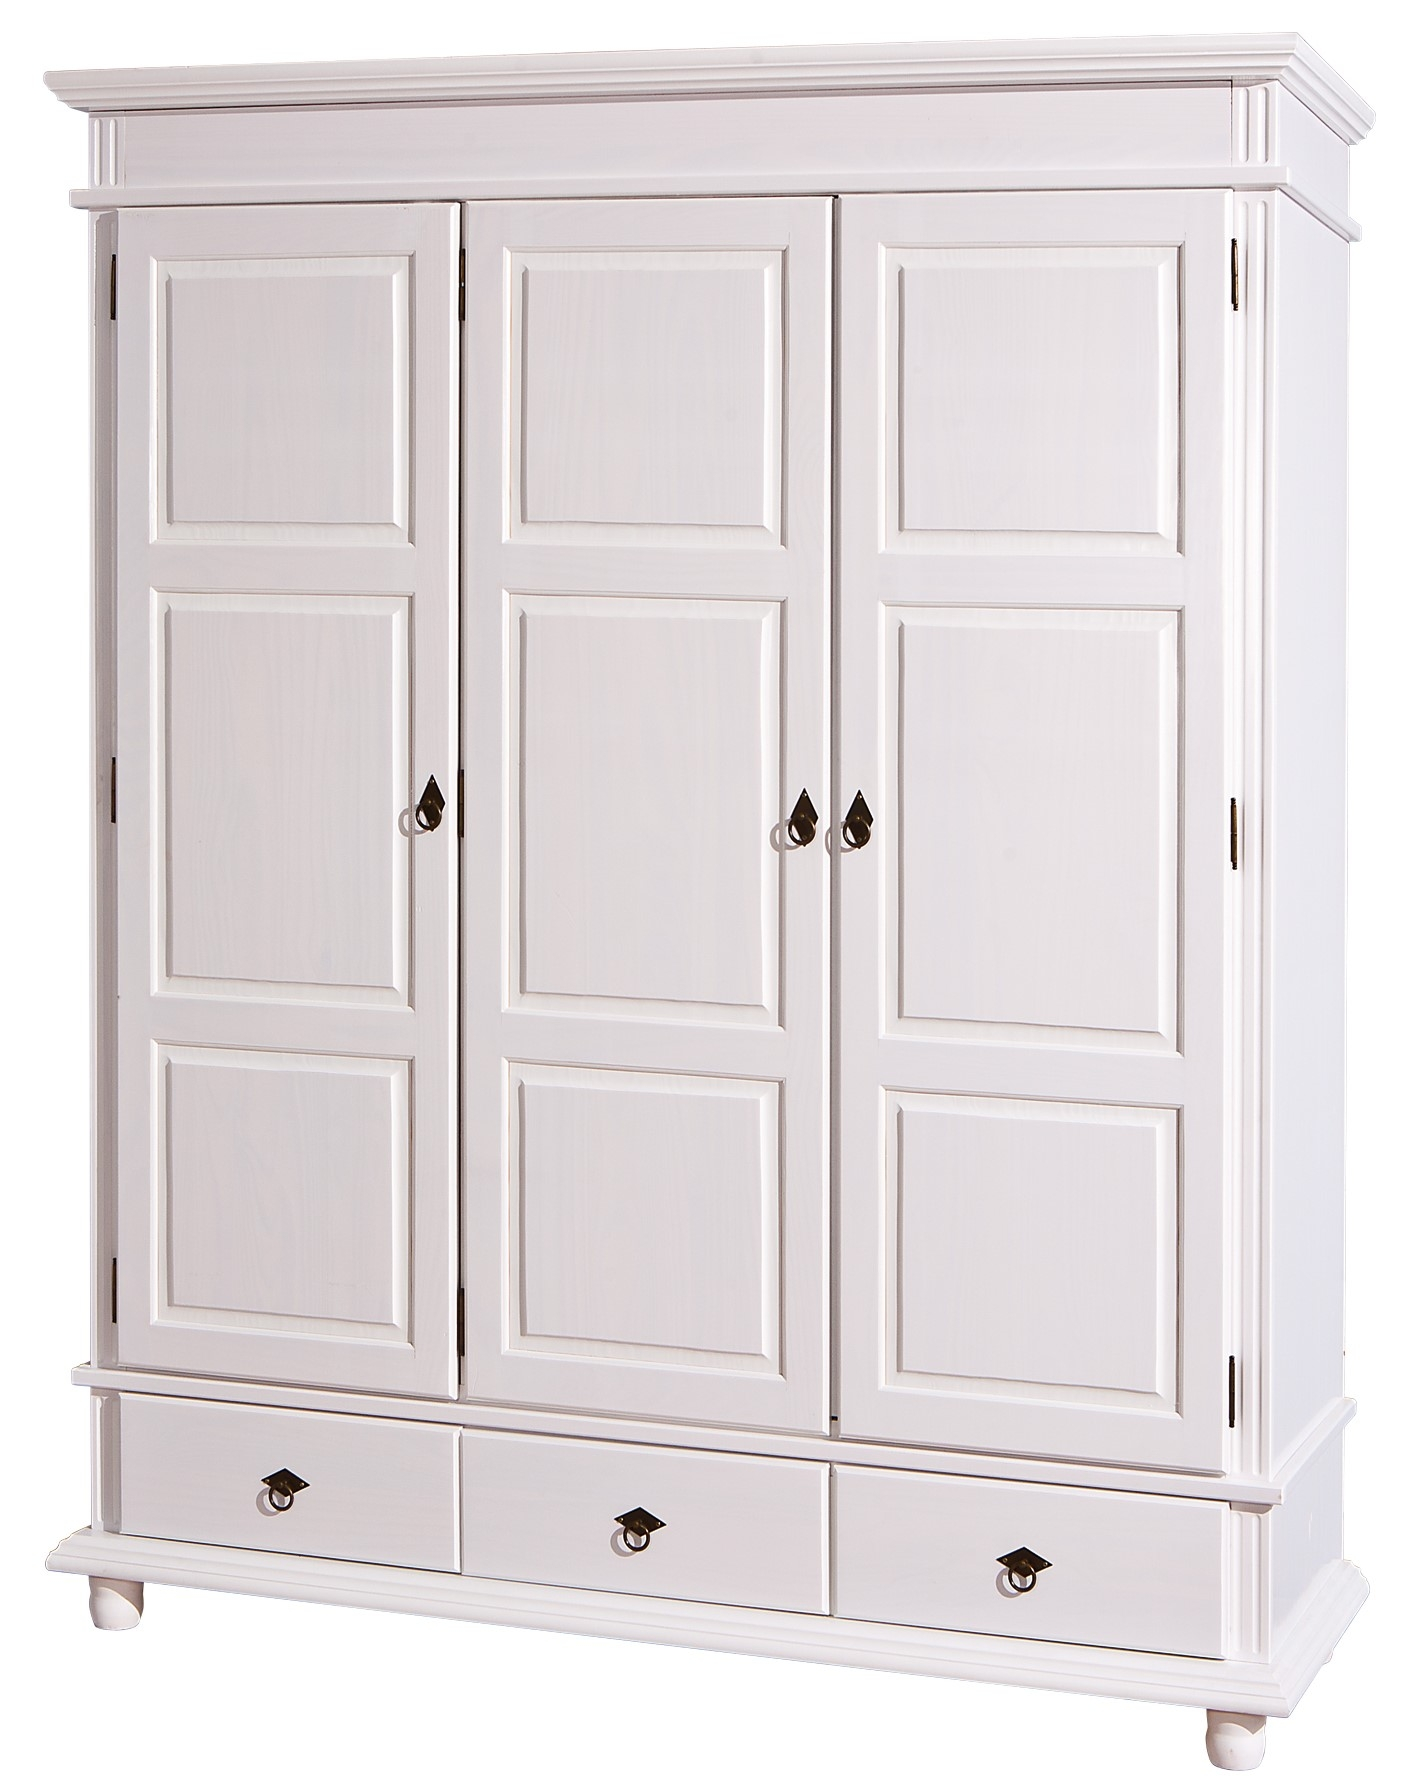 armoire pin massif 3 portes latest connect armoire portes. Black Bedroom Furniture Sets. Home Design Ideas